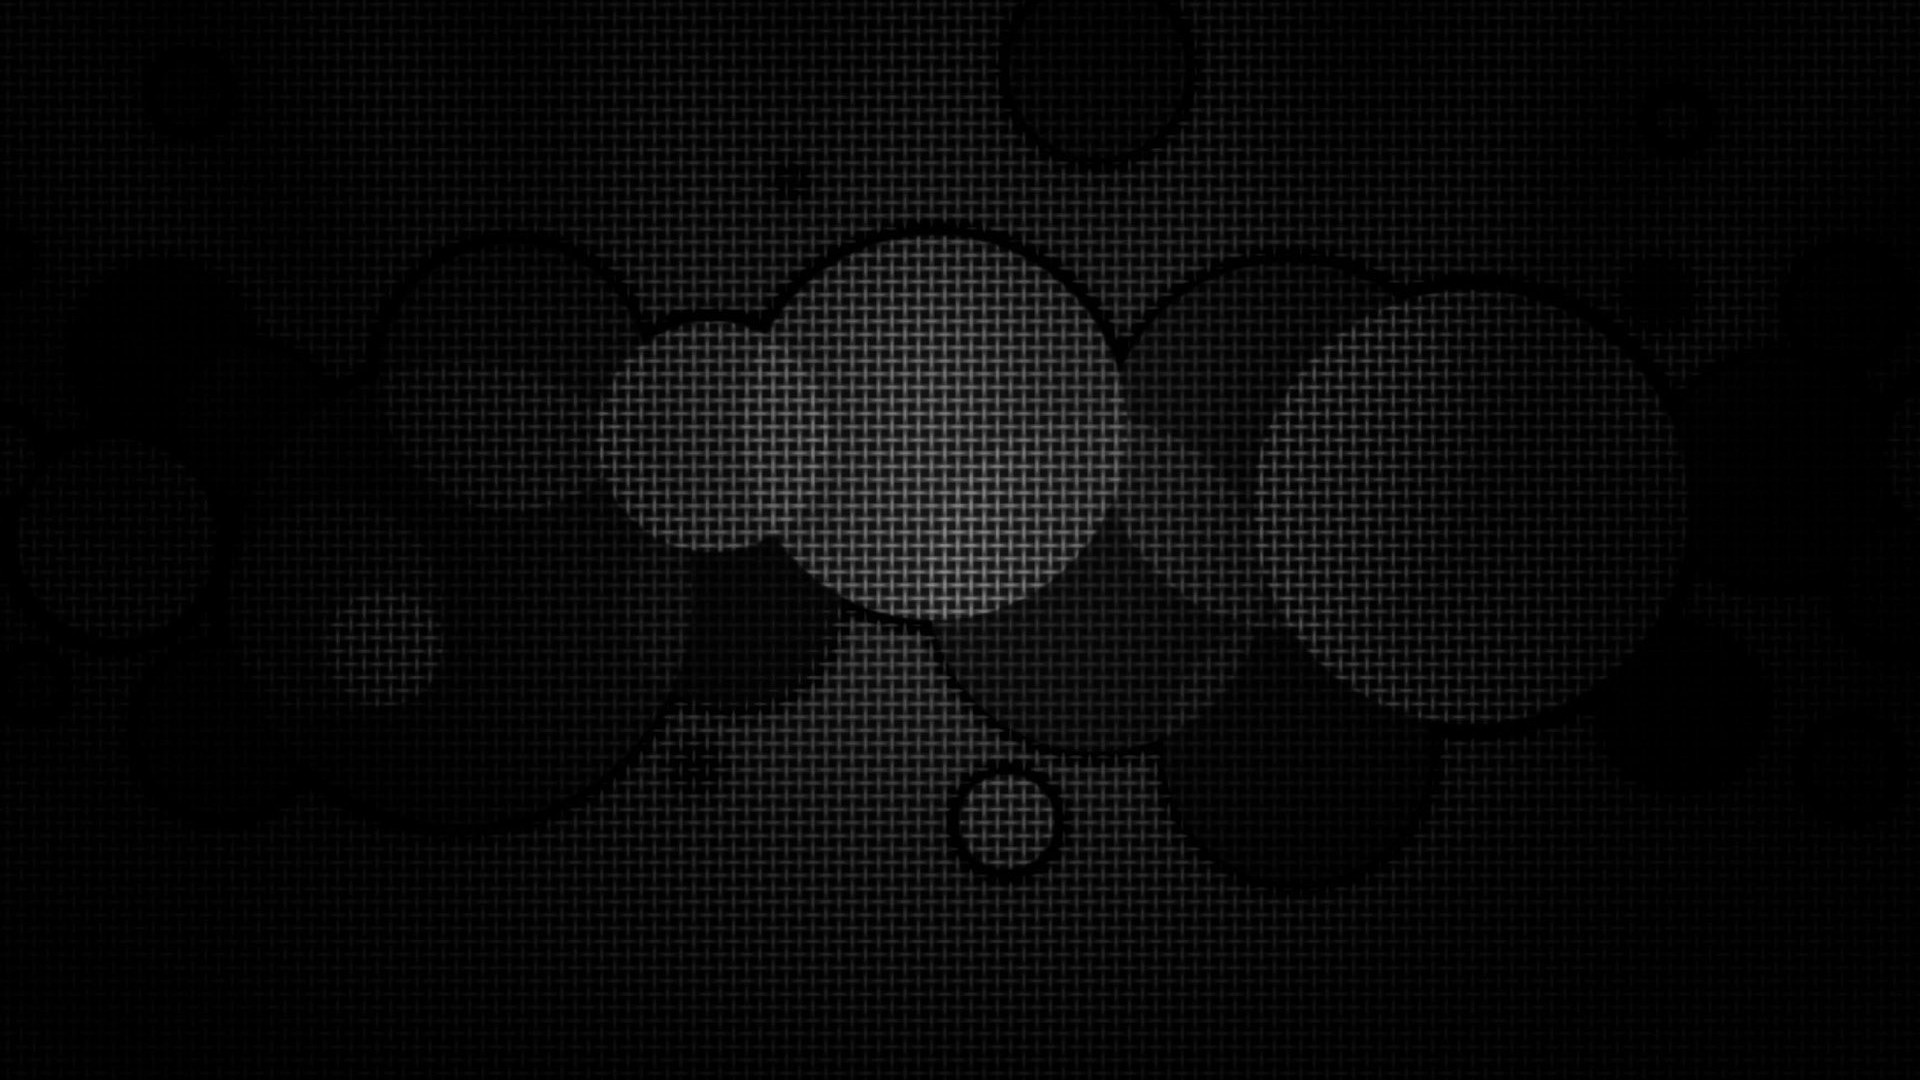 Cool Black And White Wallpapers Resolution 1920×1080-Desktop Backgrounds-27